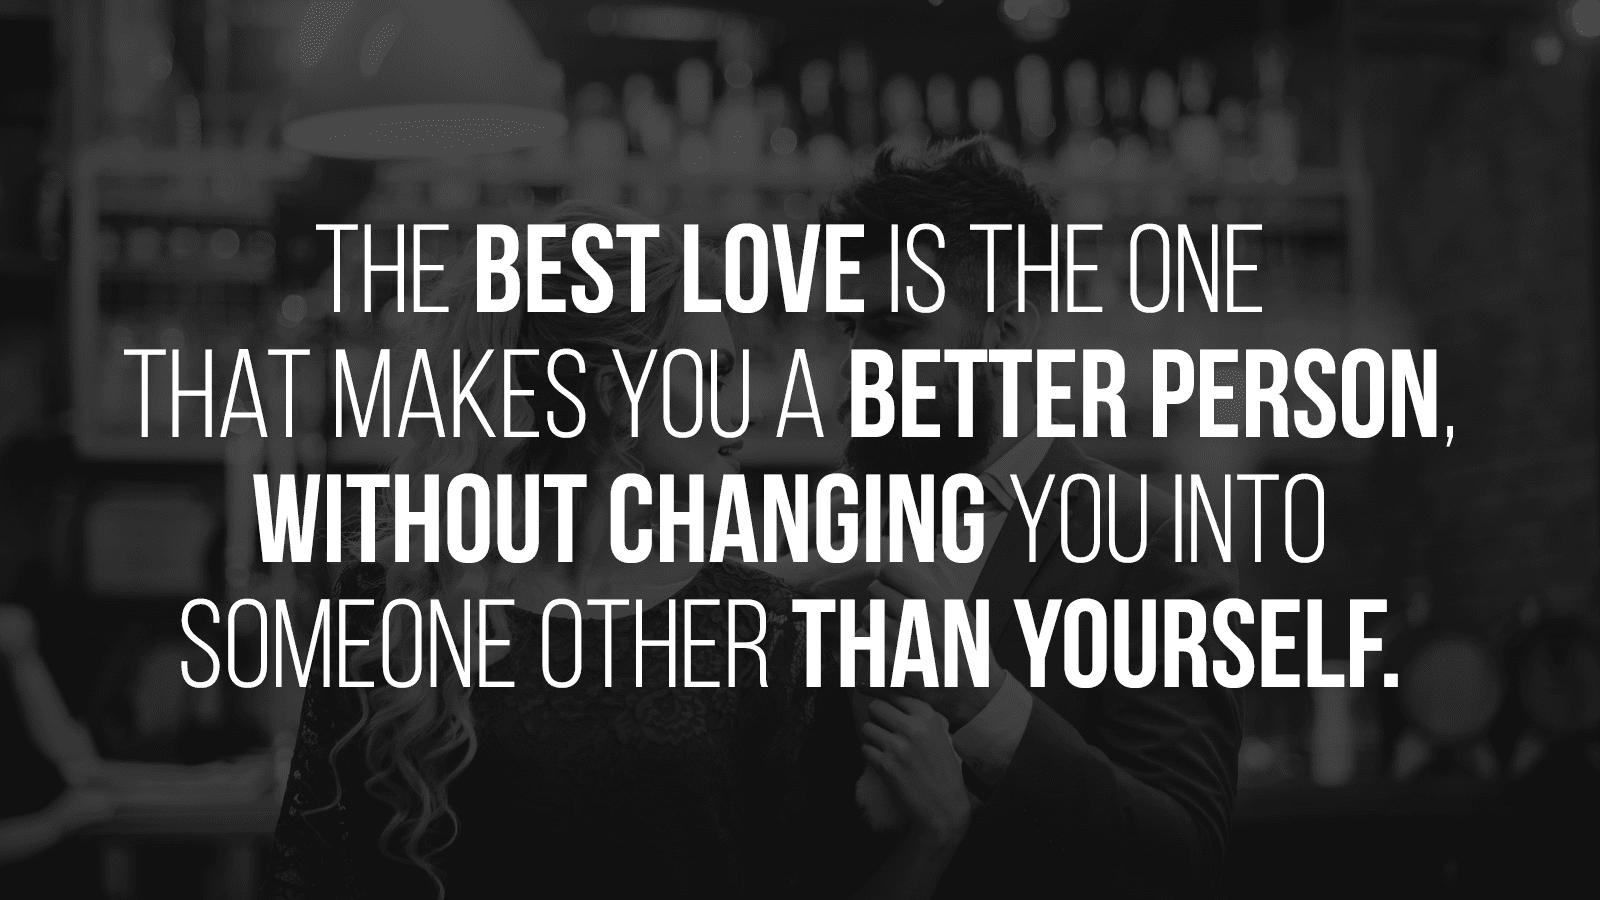 25 Love Quotes That Reveal The Reality Of Relationships And Romance